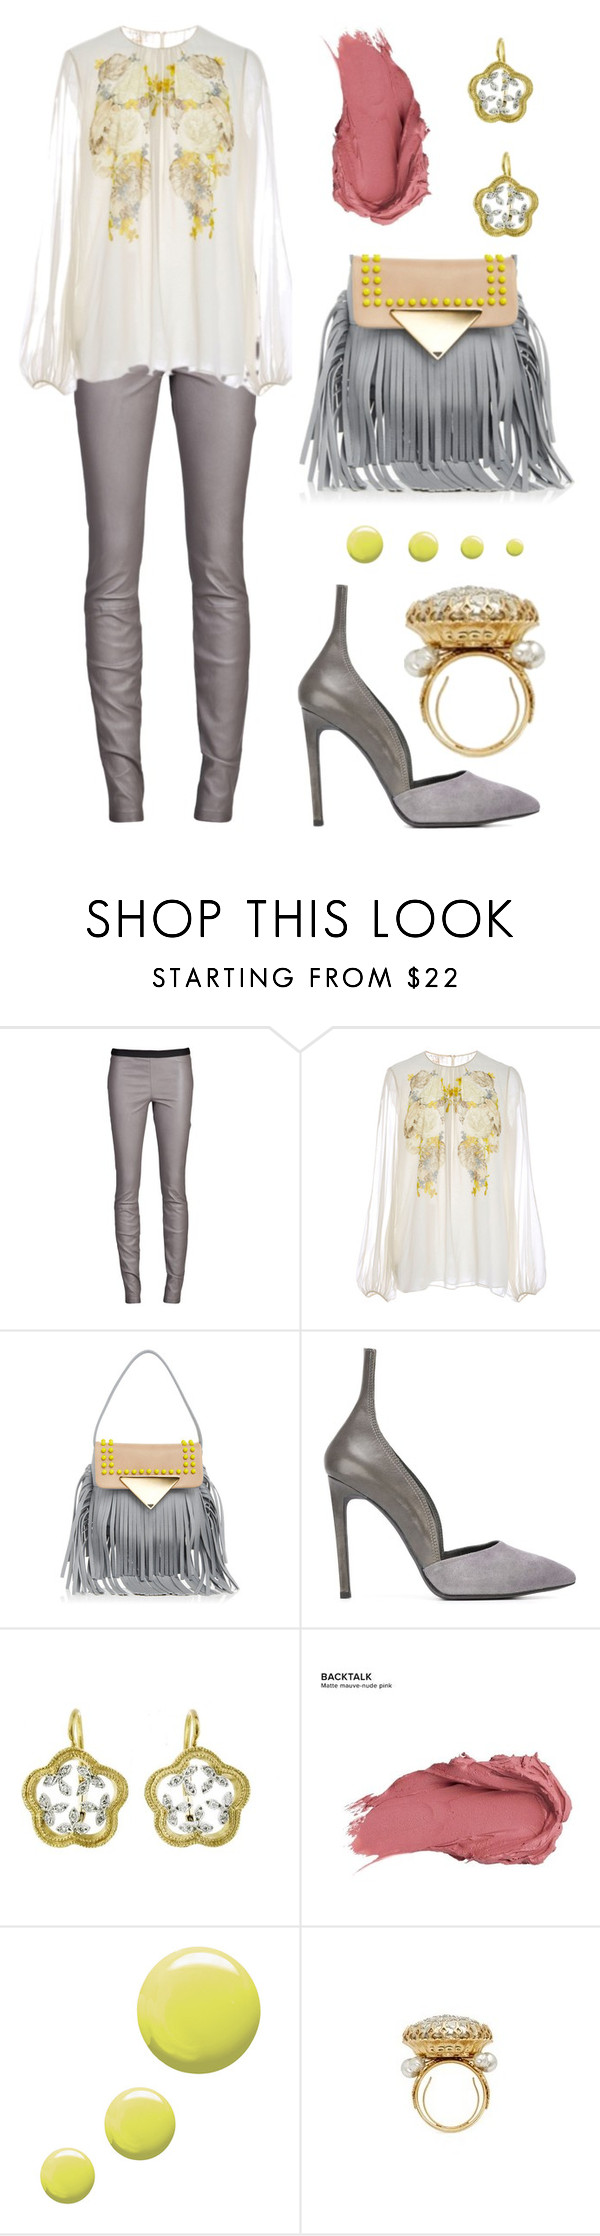 """Pretty Leather"" by dominosfalldown ❤ liked on Polyvore featuring Theory, Giambattista Valli, Sara Battaglia, A.F. Vandevorst, Cathy Waterman, Urban Decay, Topshop and Miriam Haskell"